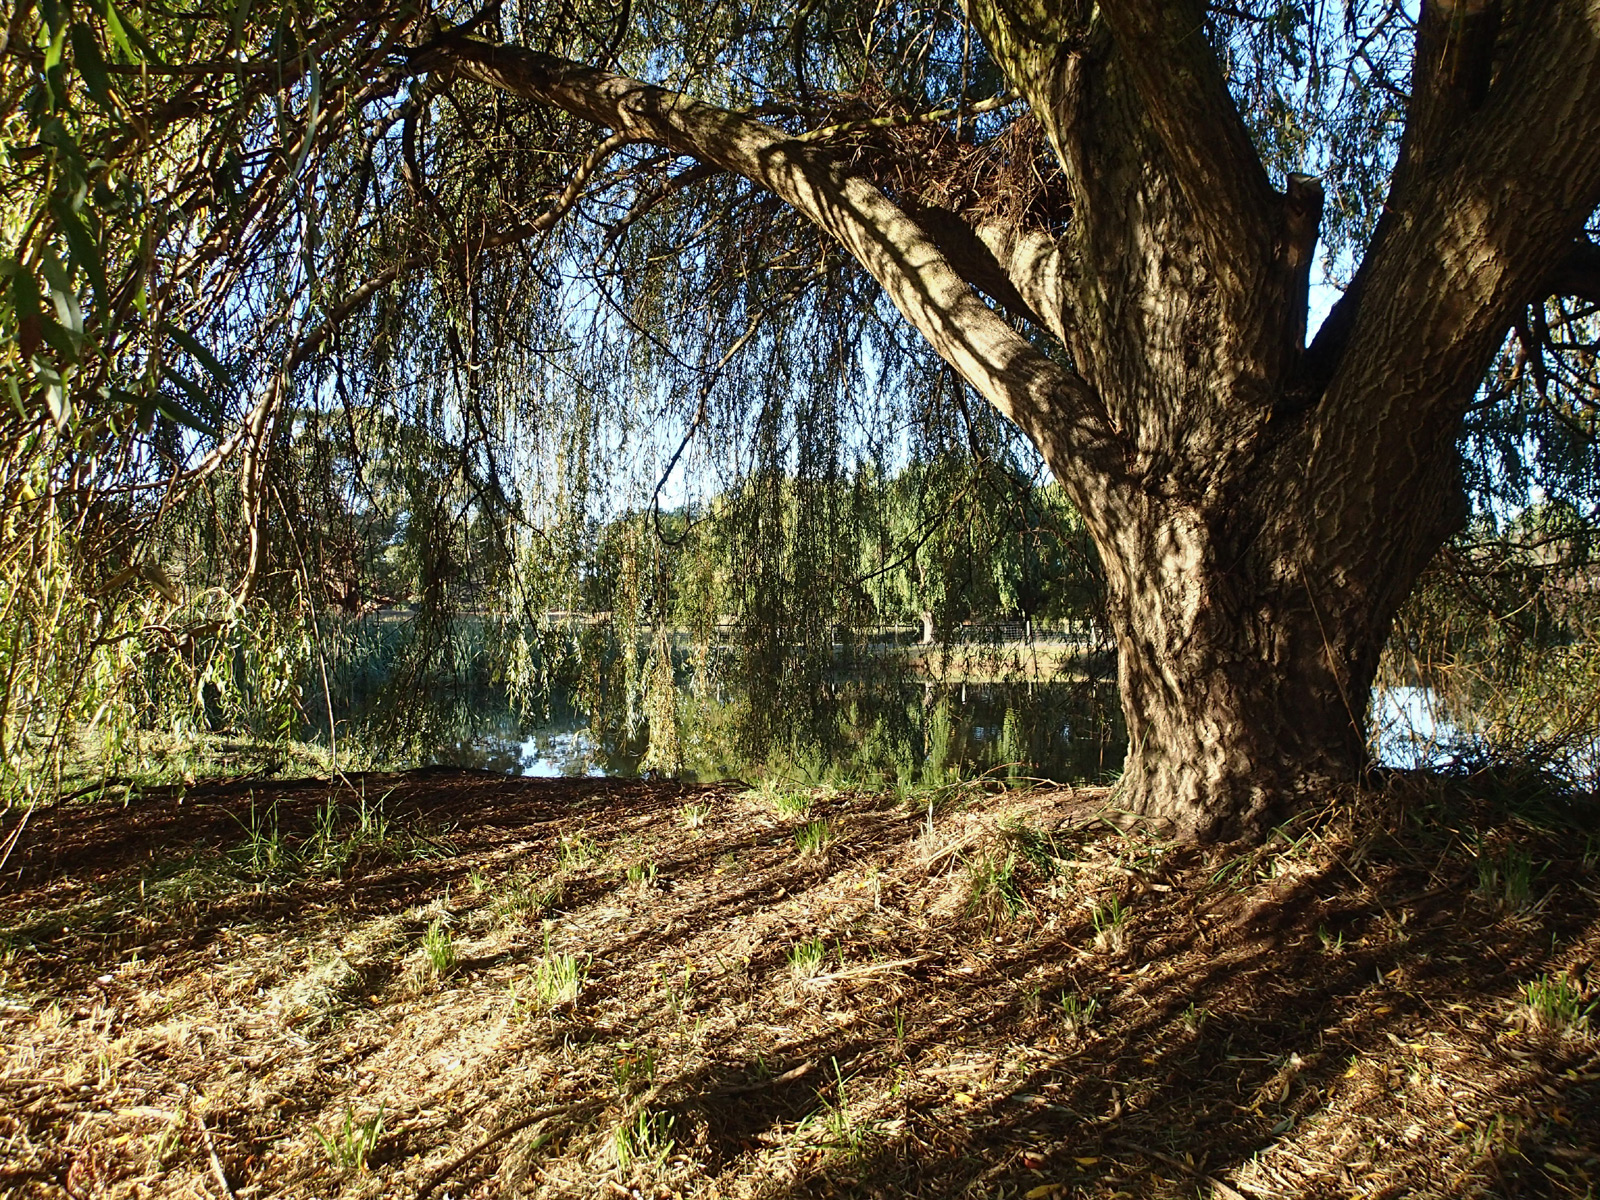 weeping willow tree with the pond and shadows